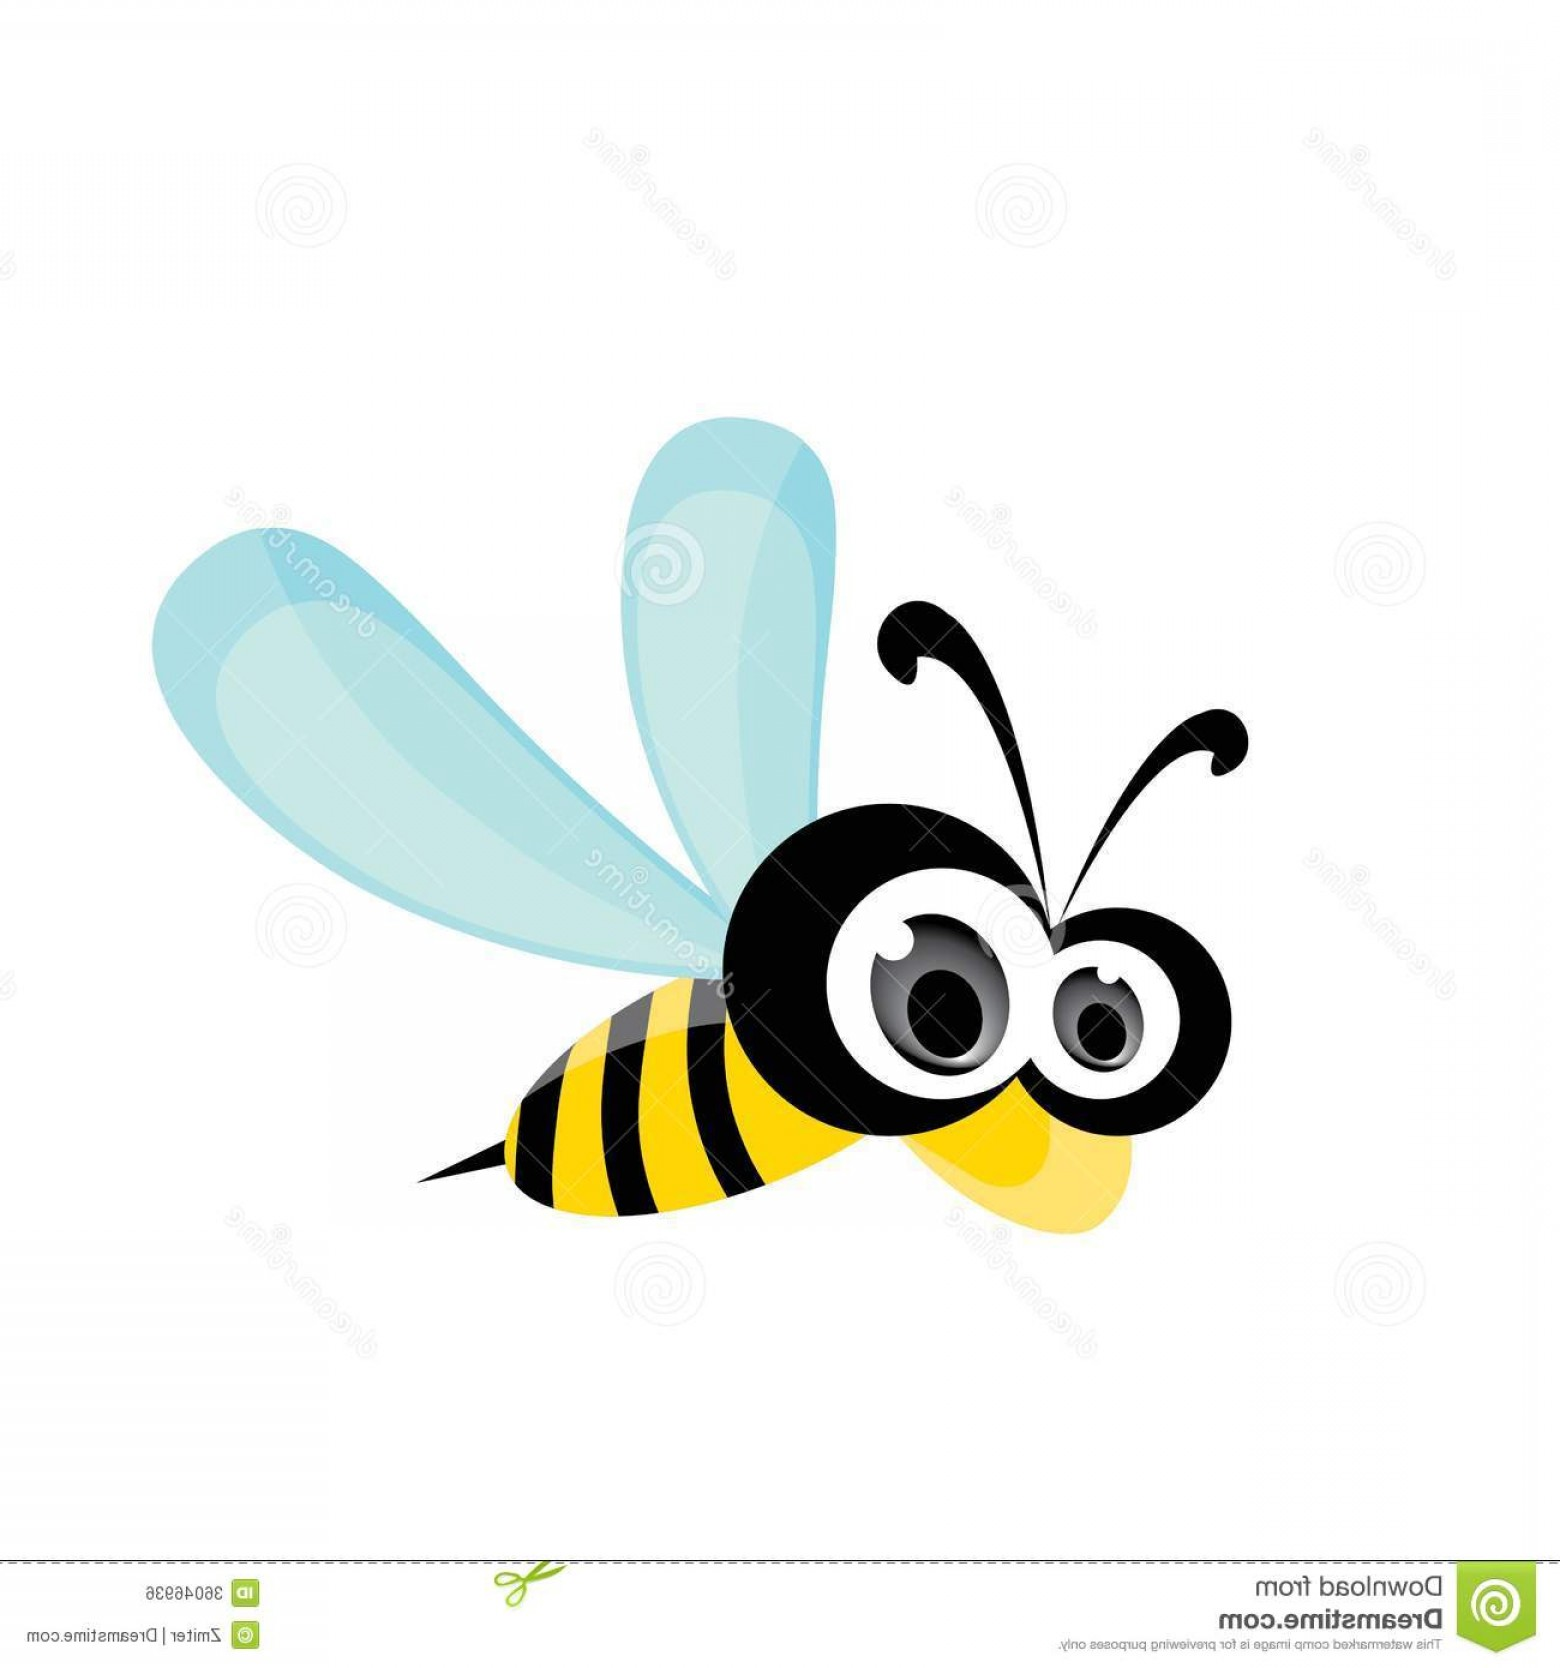 Vector Bee Icon: Royalty Free Stock Image Cartoon Cute Bright Baby Bee Vector Illustration Icon Image